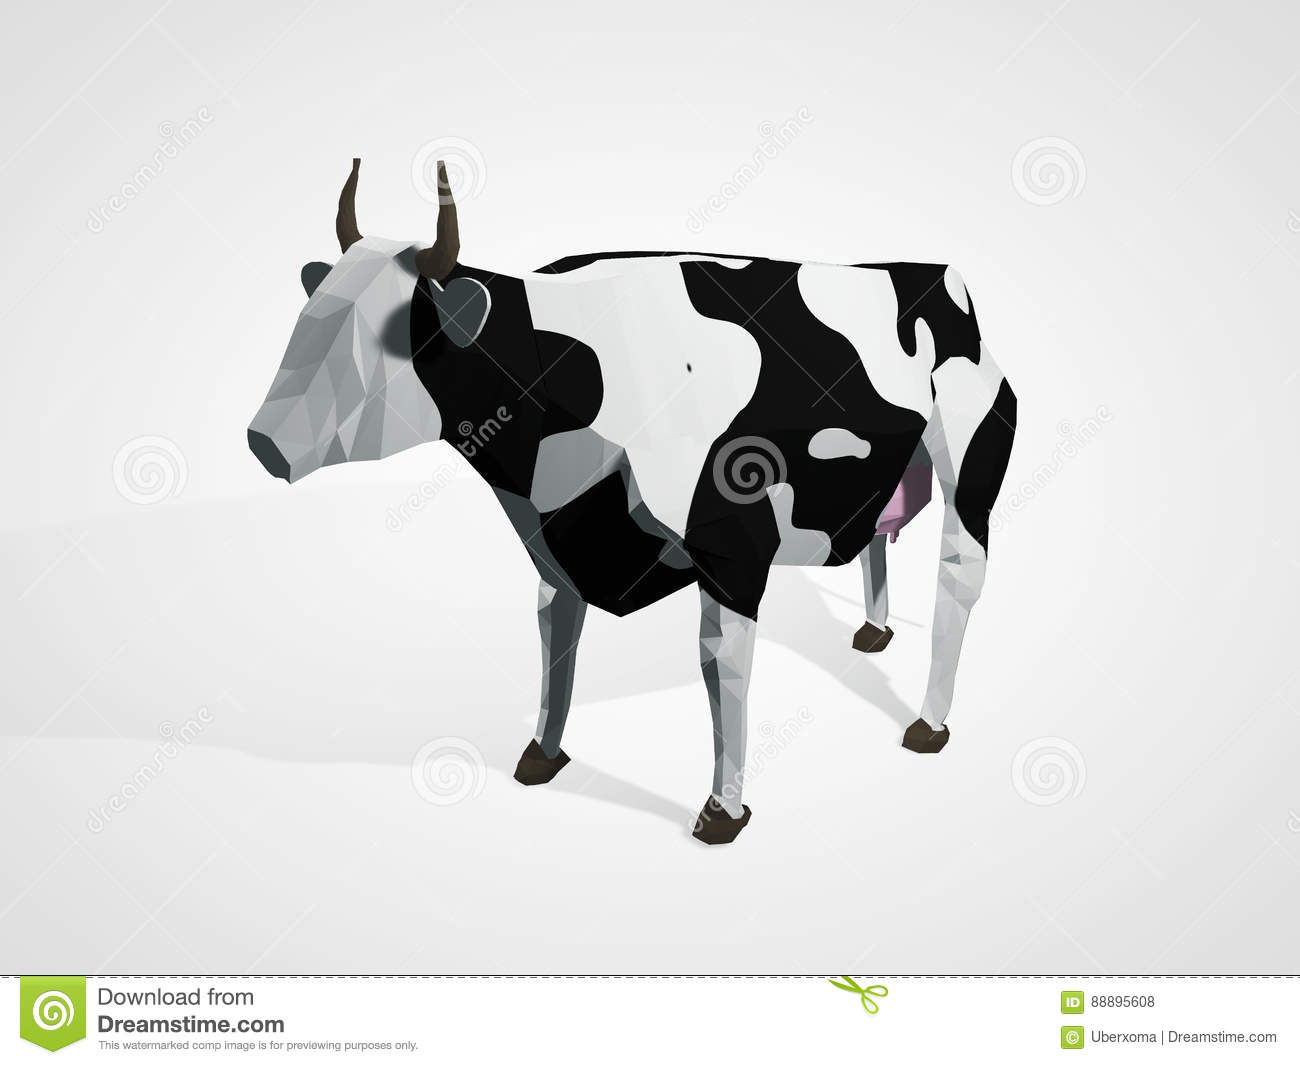 3D Illustration Of Origami Cow. Polygonal Geometric Style ...